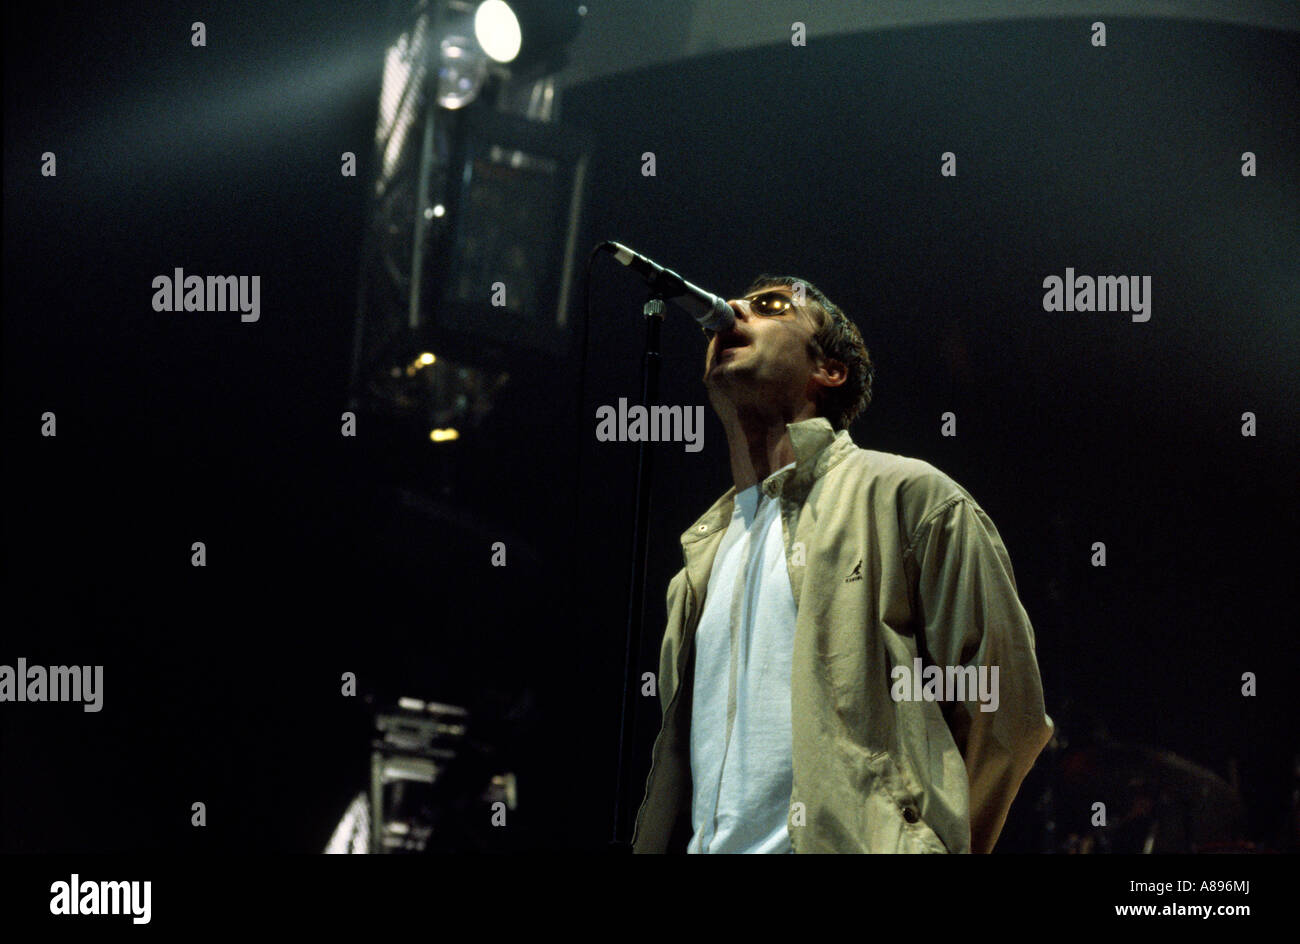 oasis playing live in birmingham noel gallagher liam gallagher - Stock Image